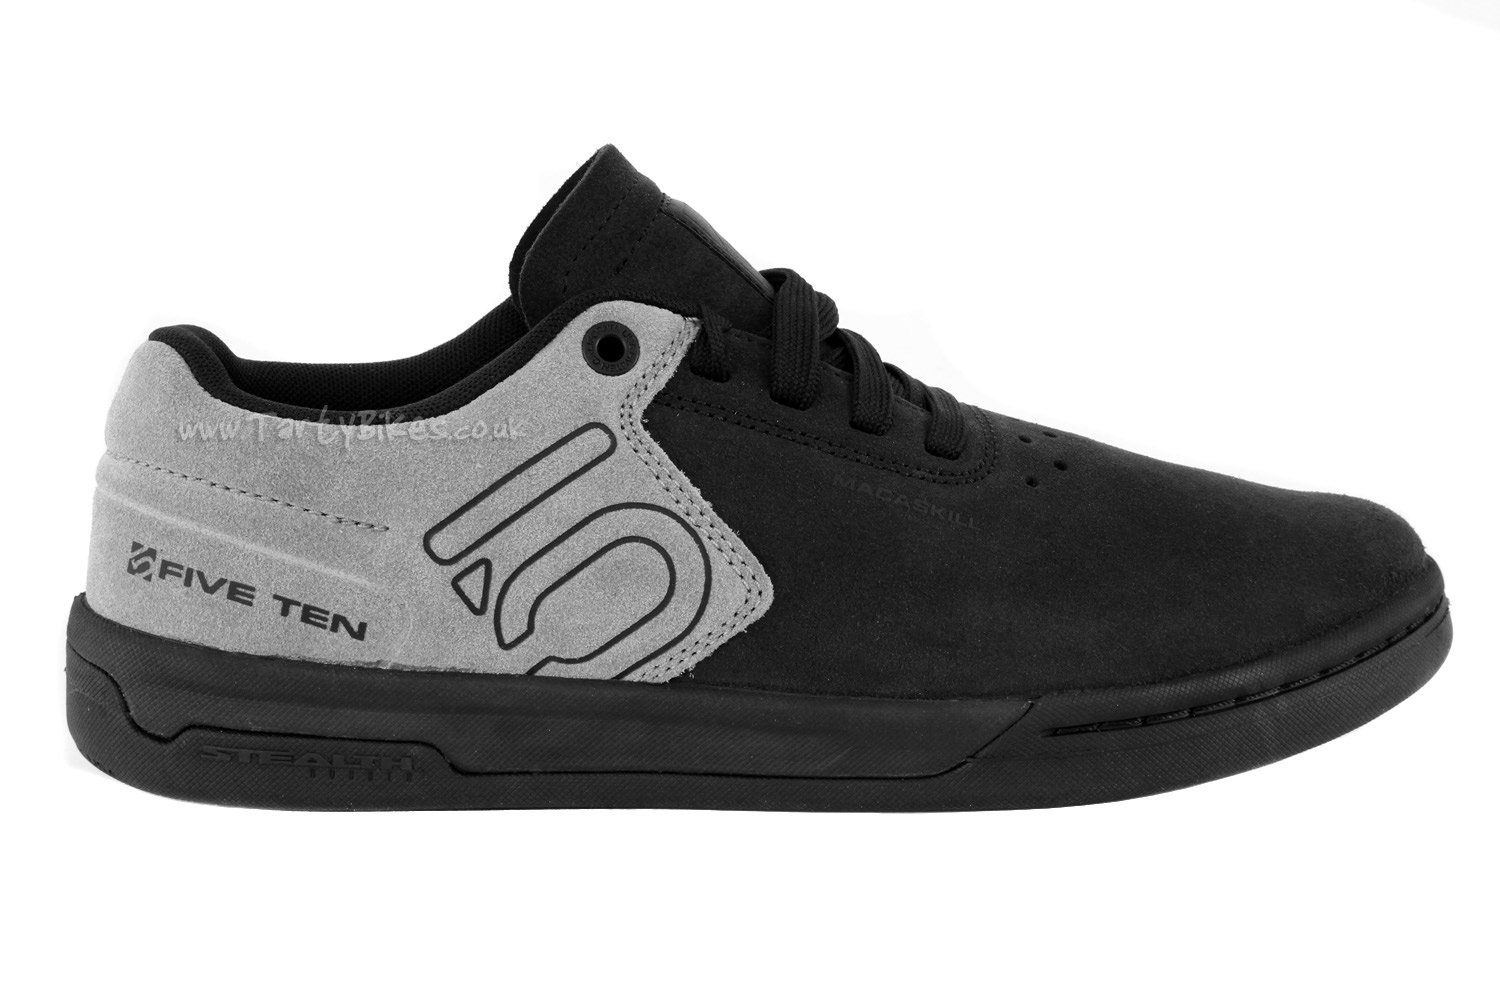 Five Ten Danny MacAskill Shoes